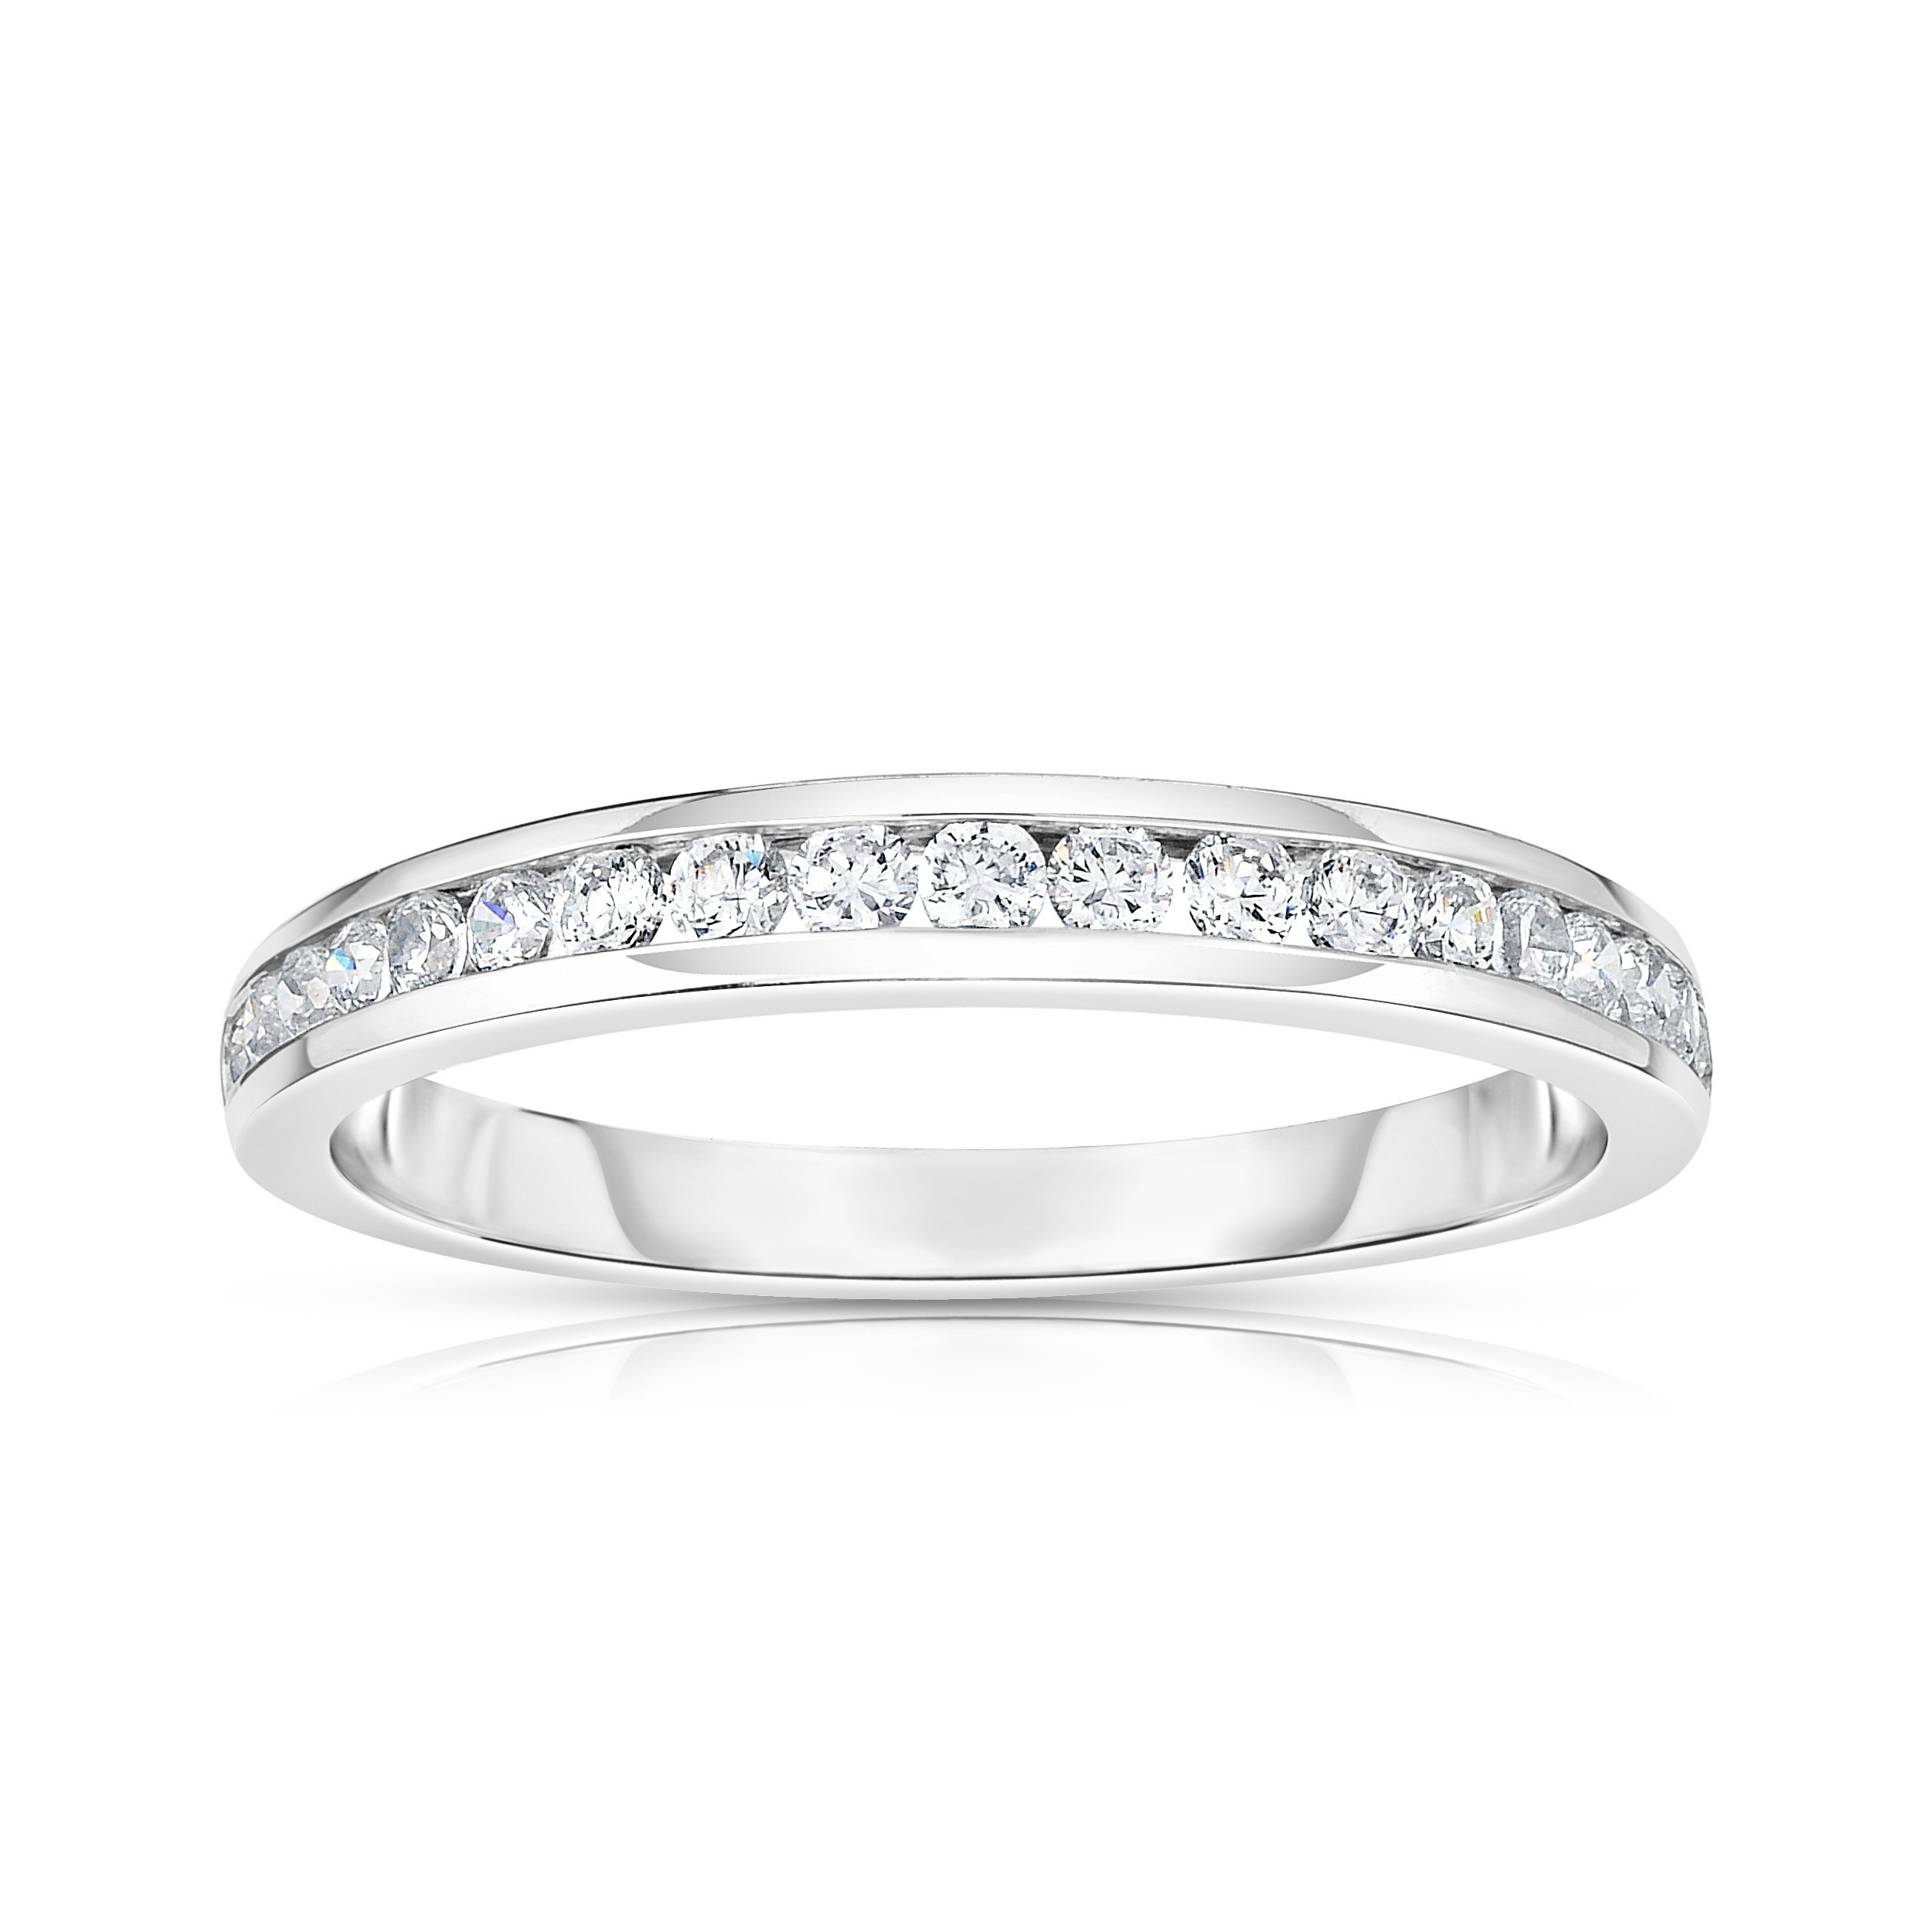 Noray Designs 14K White Gold Diamond (0.30 Ct, SI2-I1 Clarity, G-H Color) Channel Wedding Band